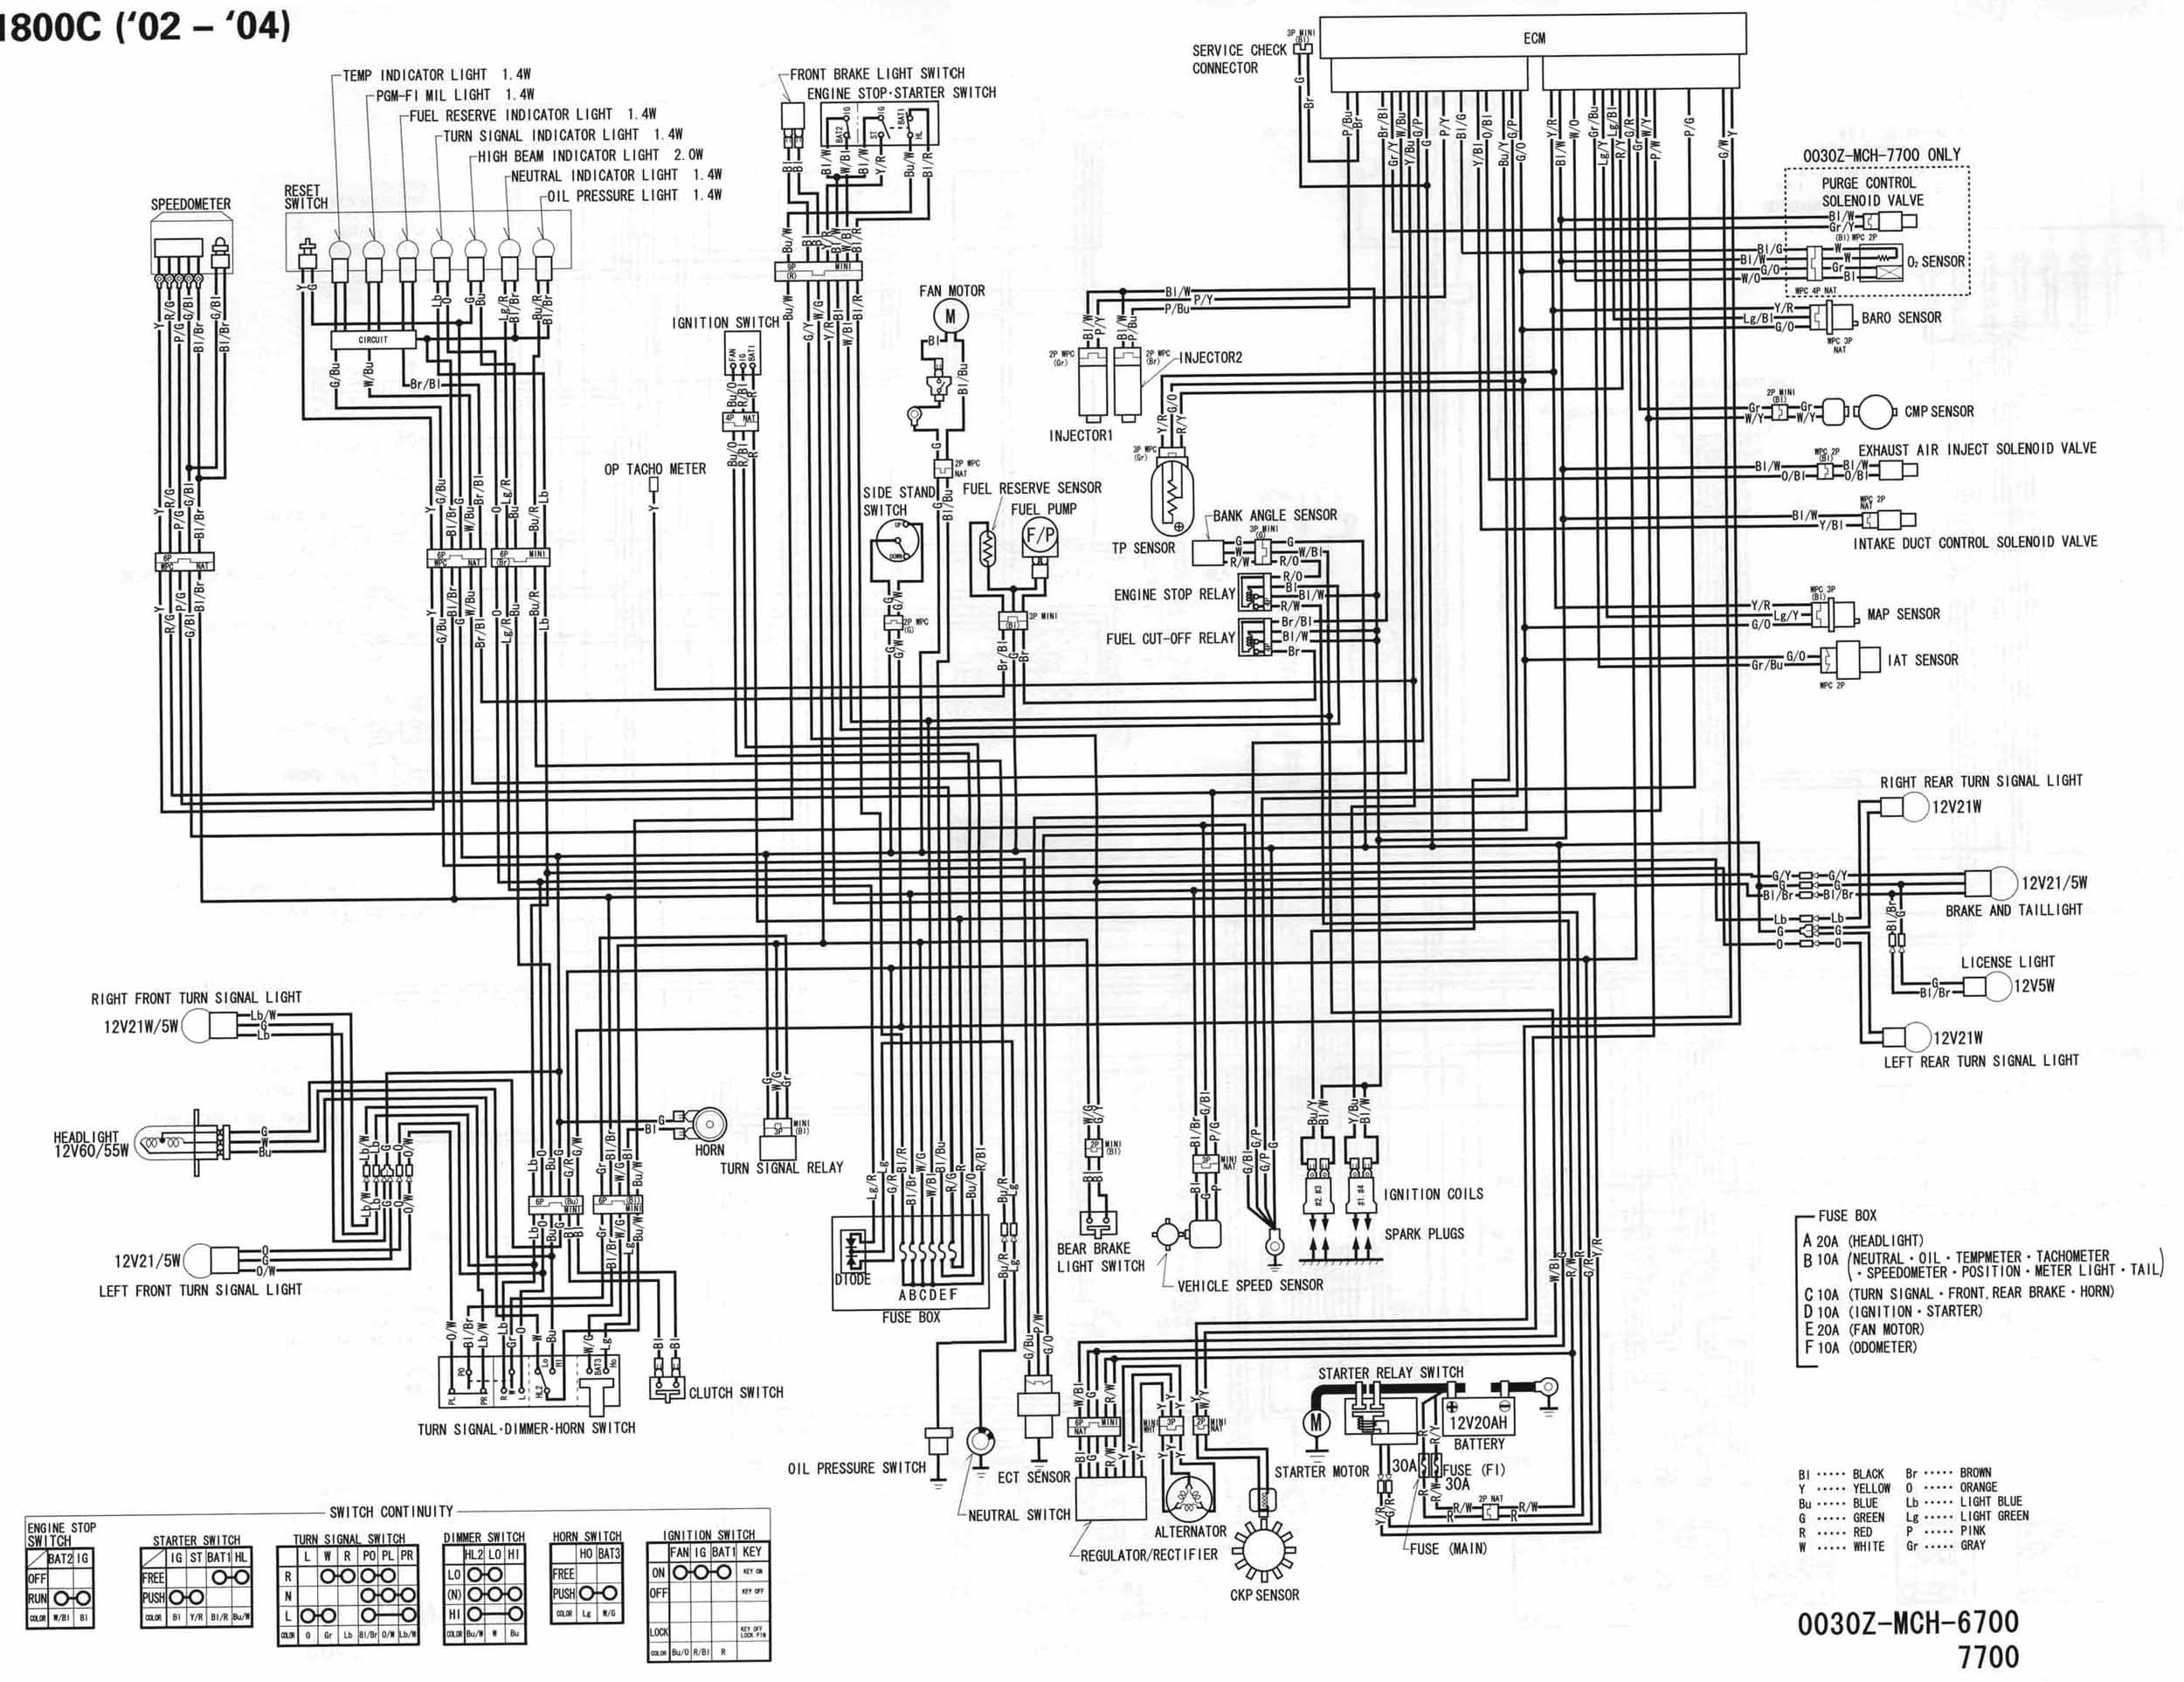 02 04_VTX1800_C_schematic motorcycle wire schematics bareass choppers motorcycle tech pages wiring diagram for victory motorcycles at bayanpartner.co